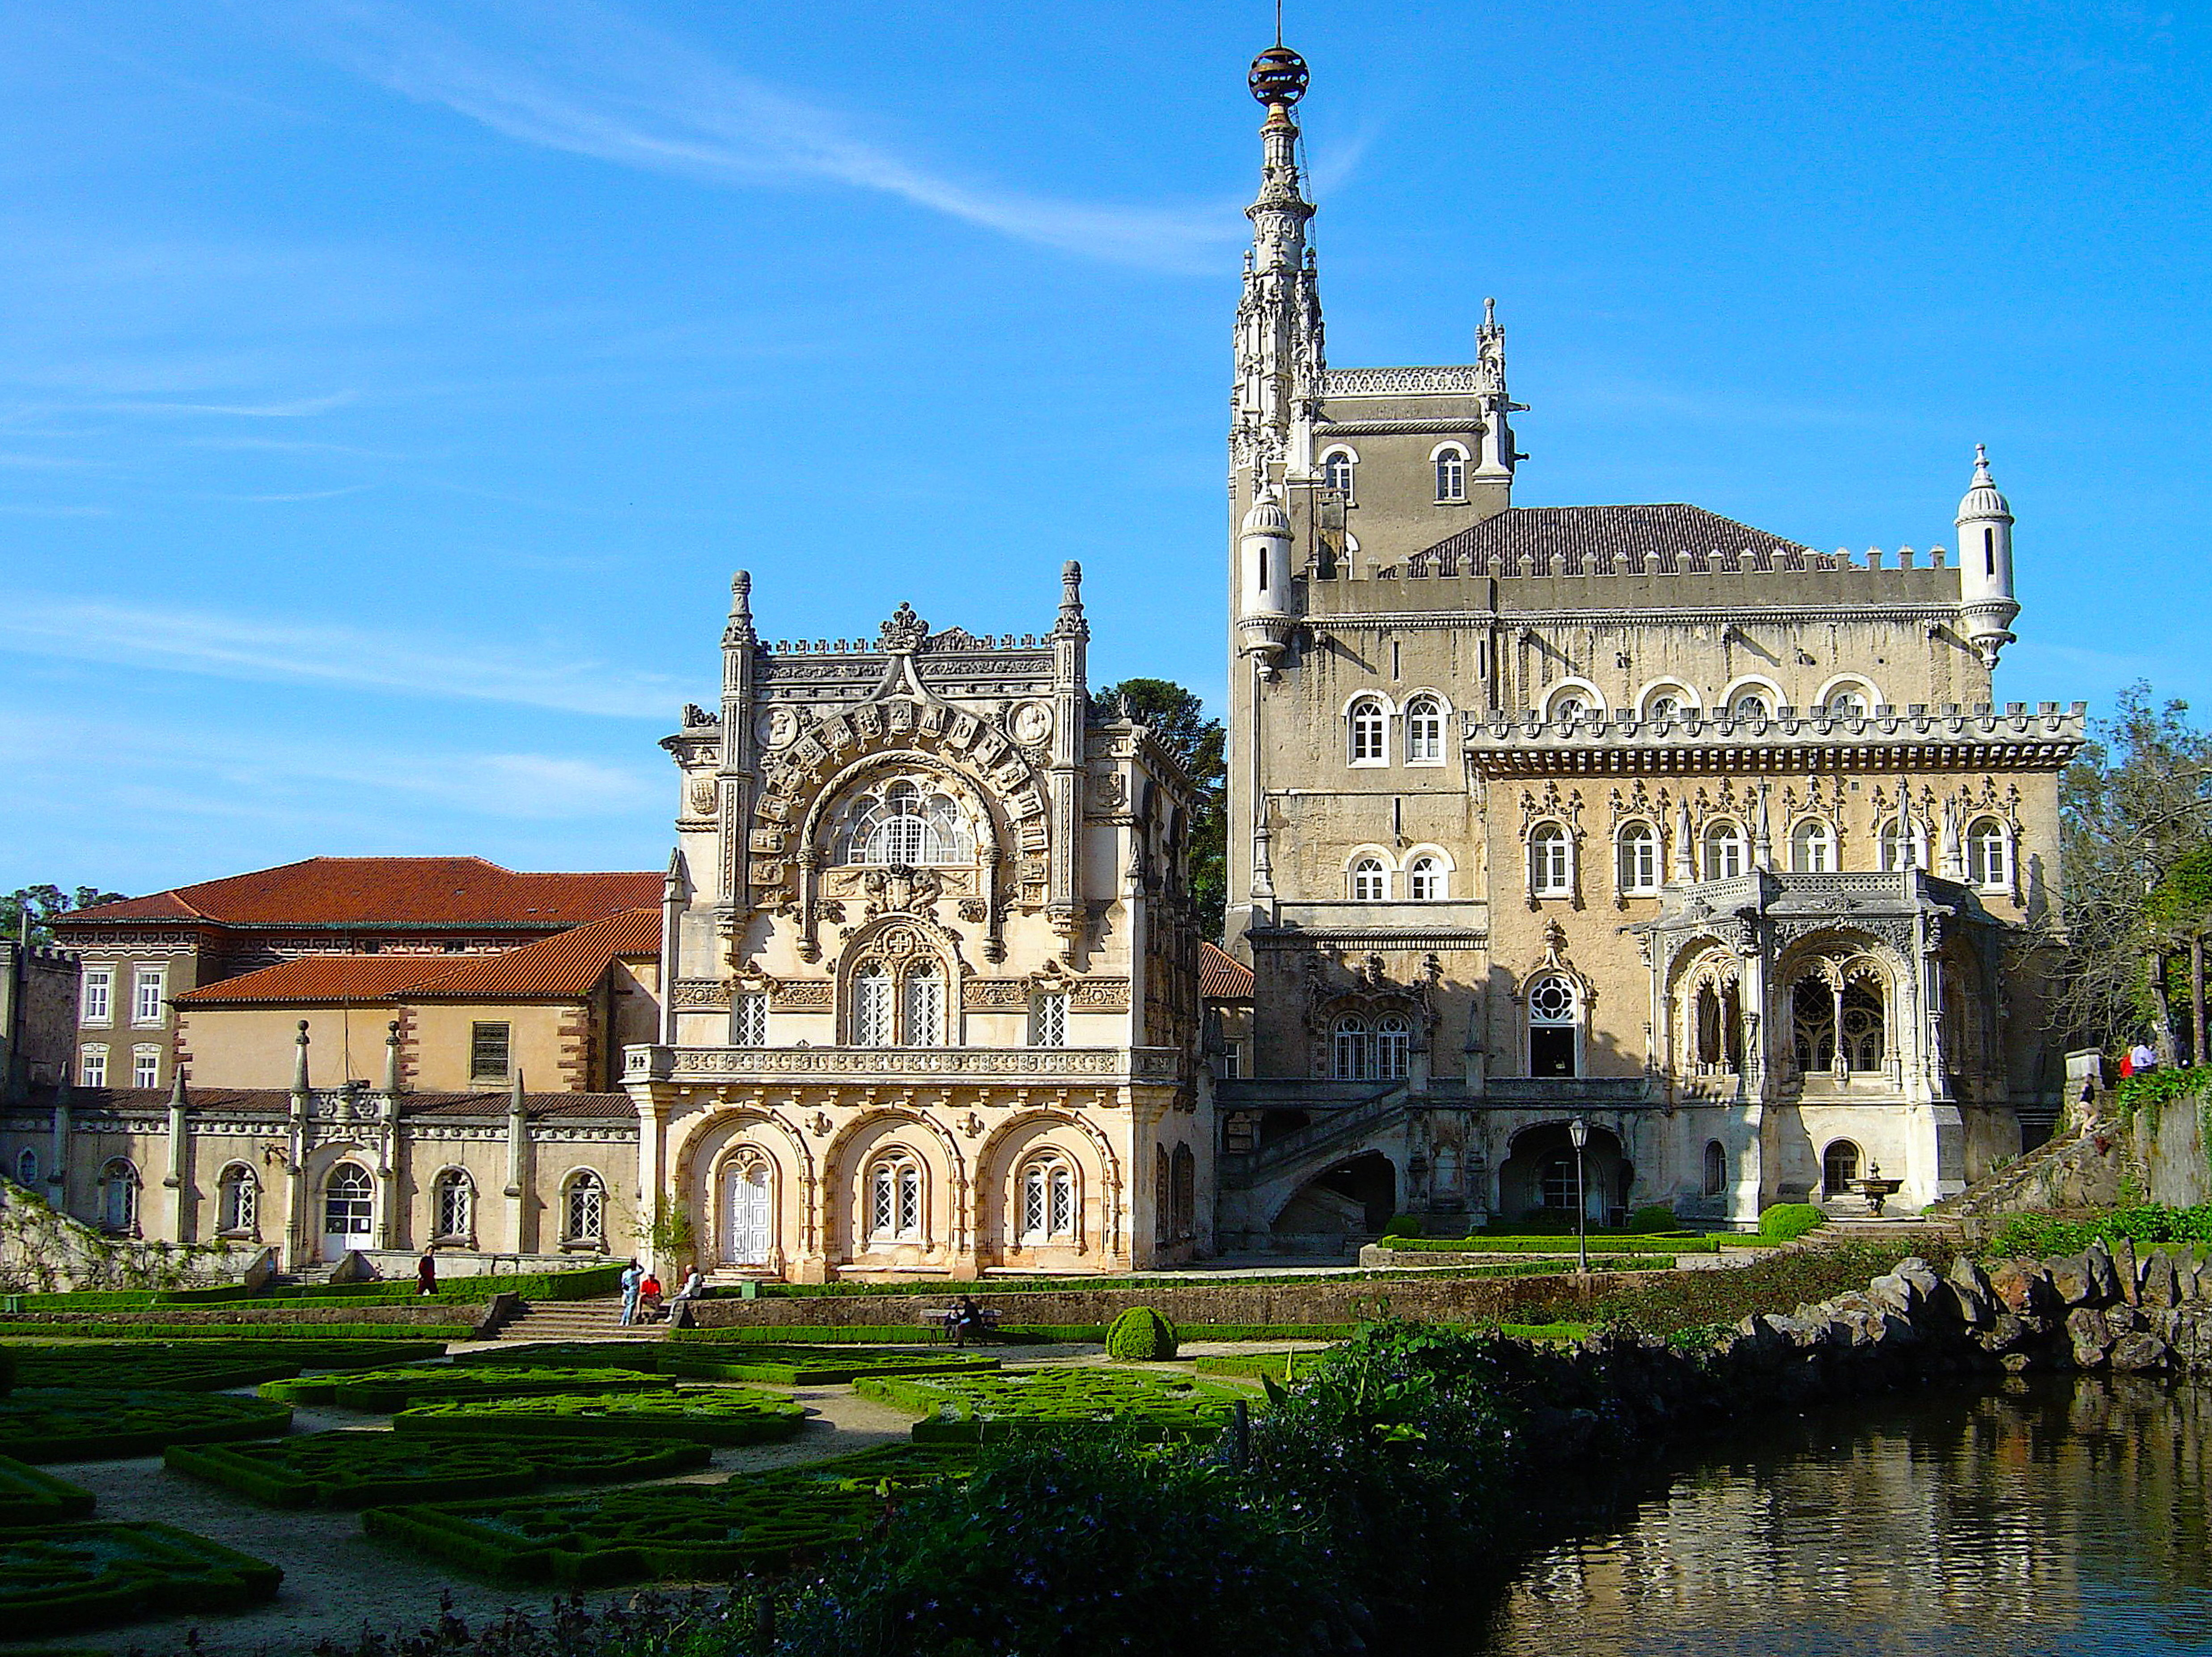 Best Hotels in Central Portugal hotels Best Hotels in Central Portugal Palace Hotel do Bussaco